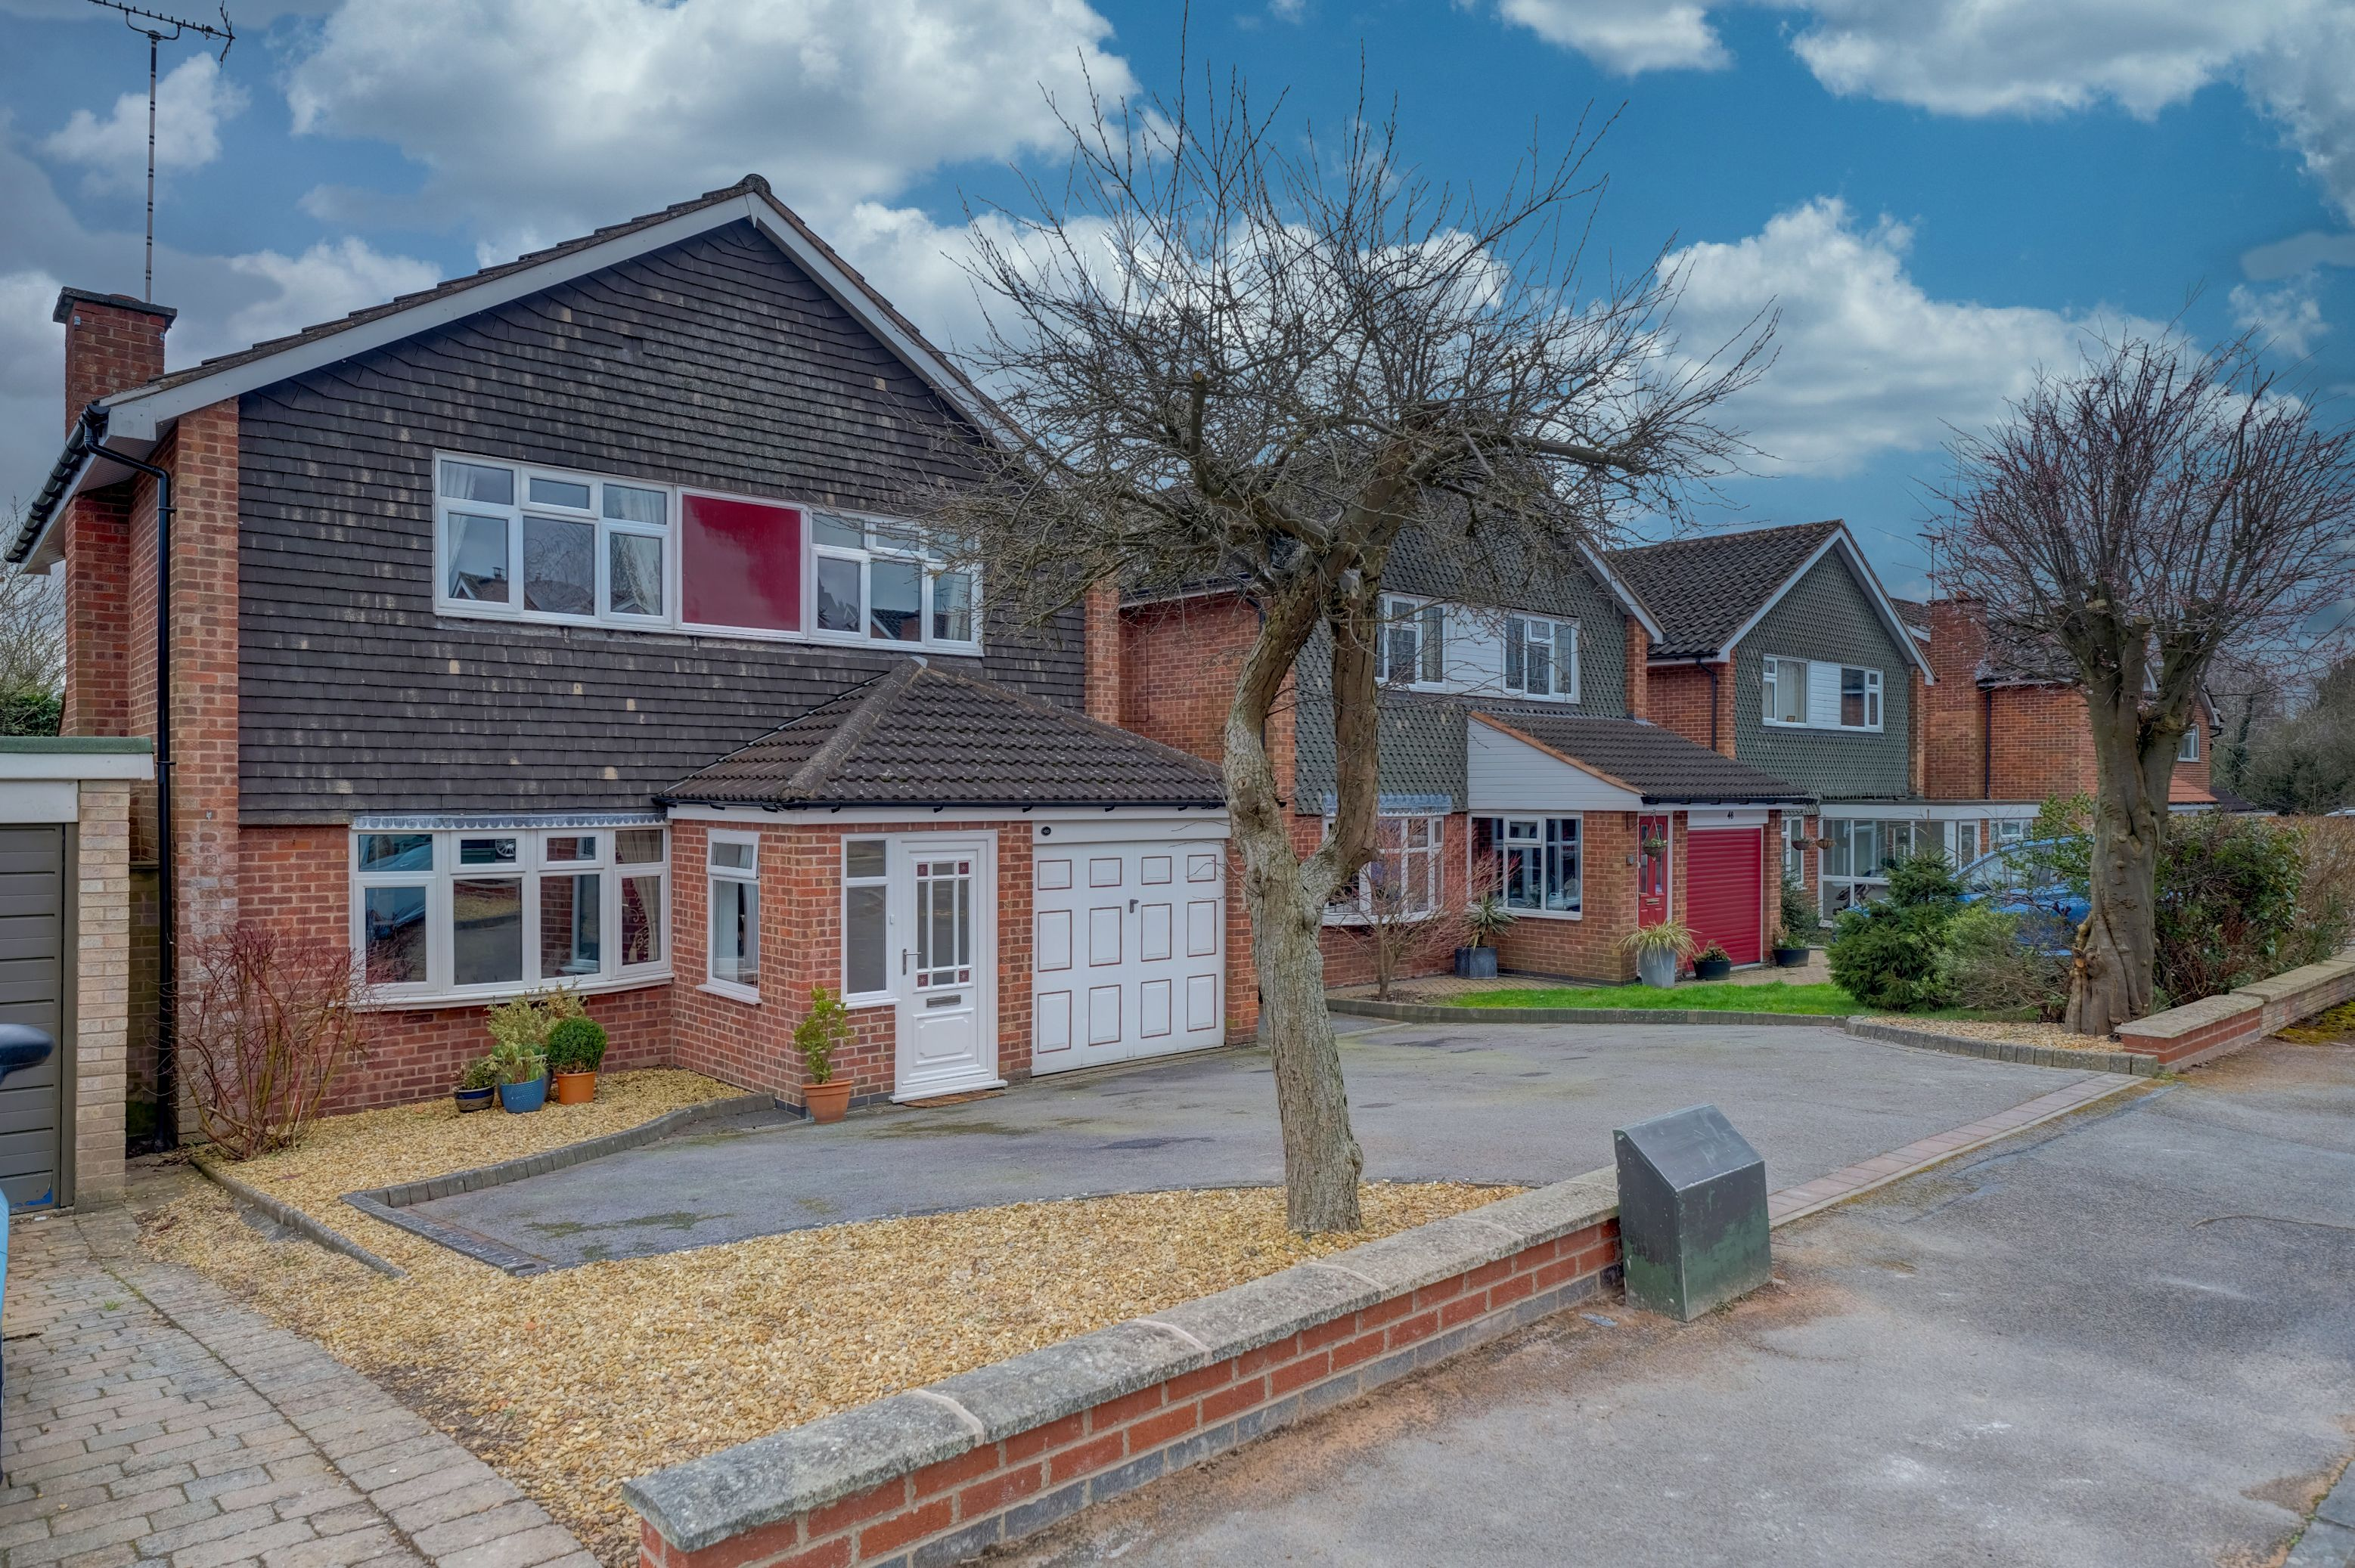 4 bed detached house for sale in Lime Grove, Kirby Muxloe, LE9, Leicester 0